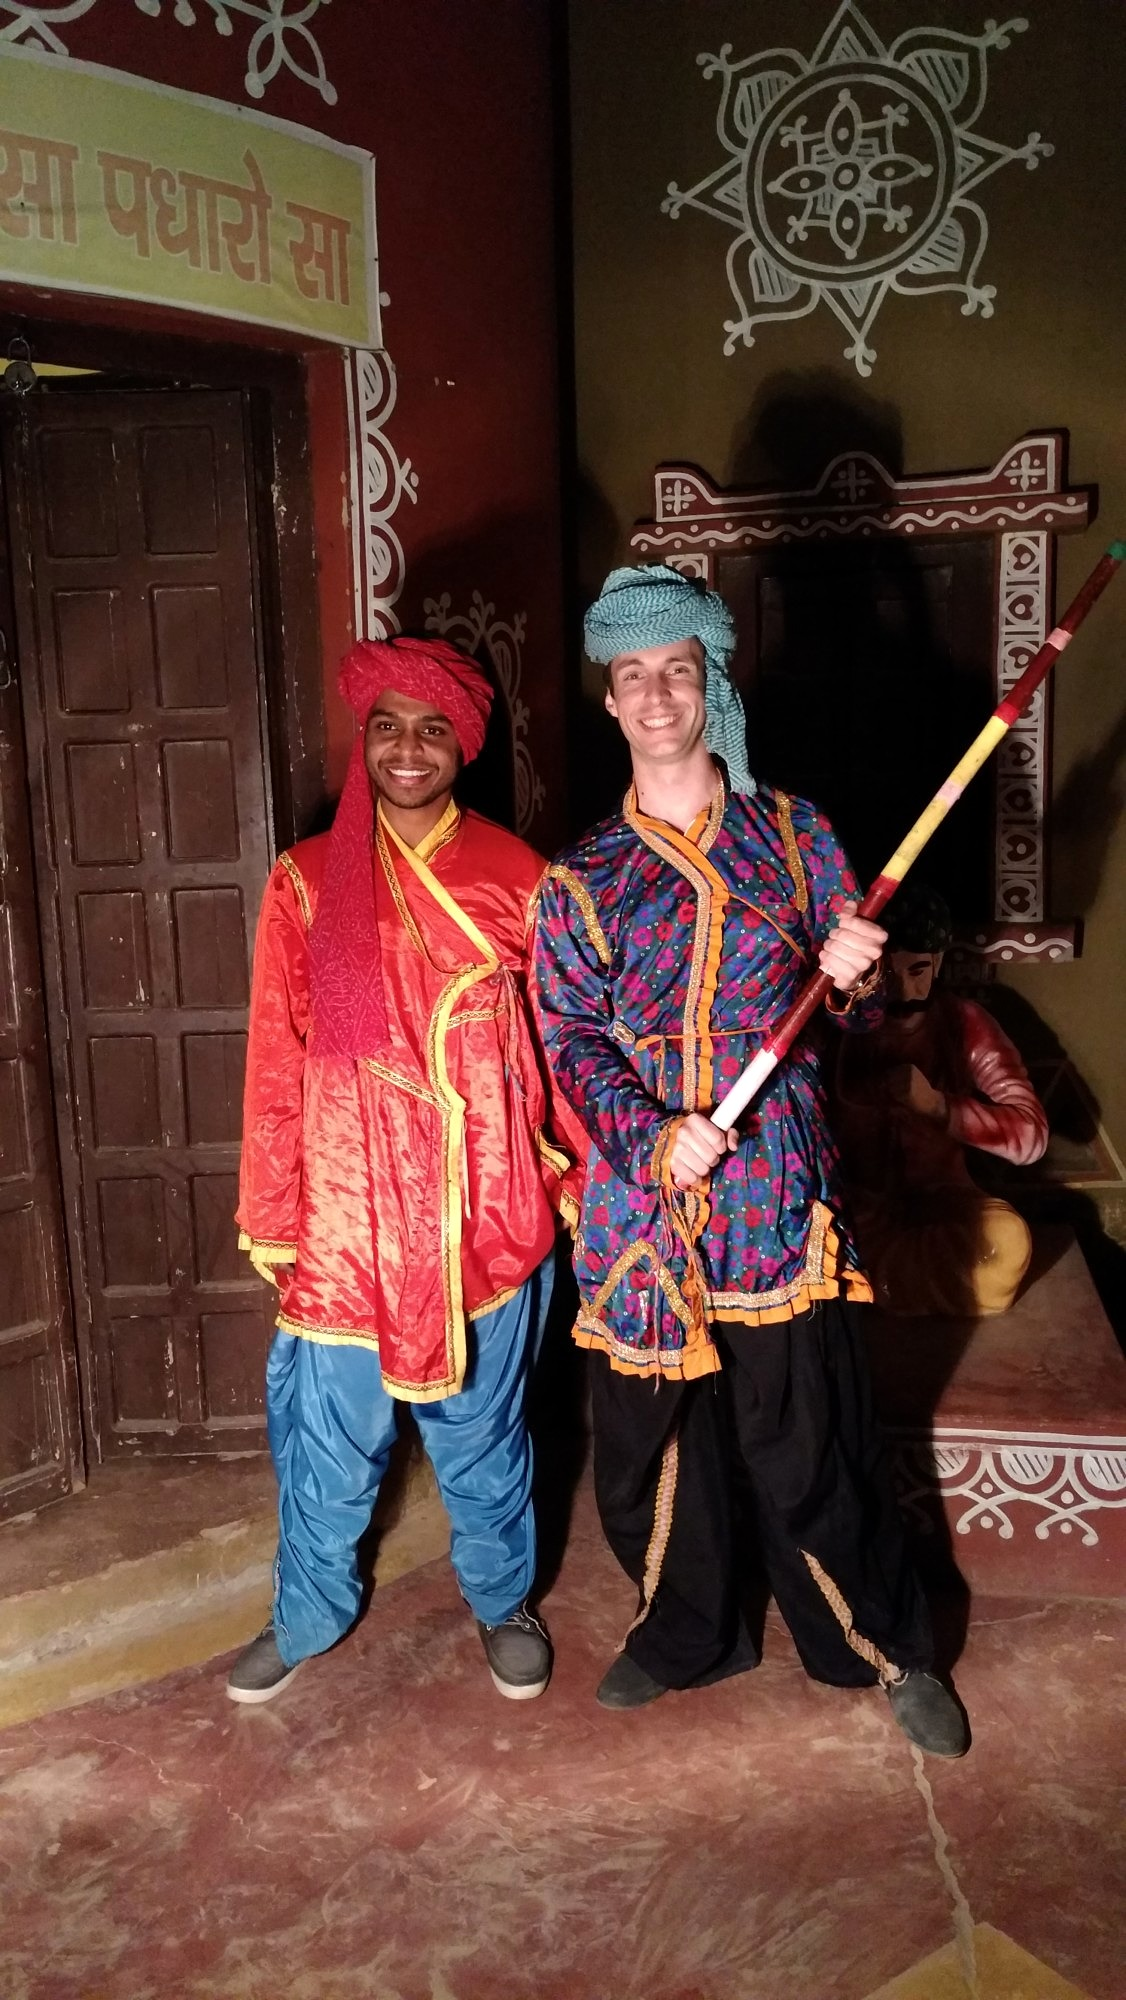 Two researchers from both universities wearing traditional clothing during a trip to Rajasthan.